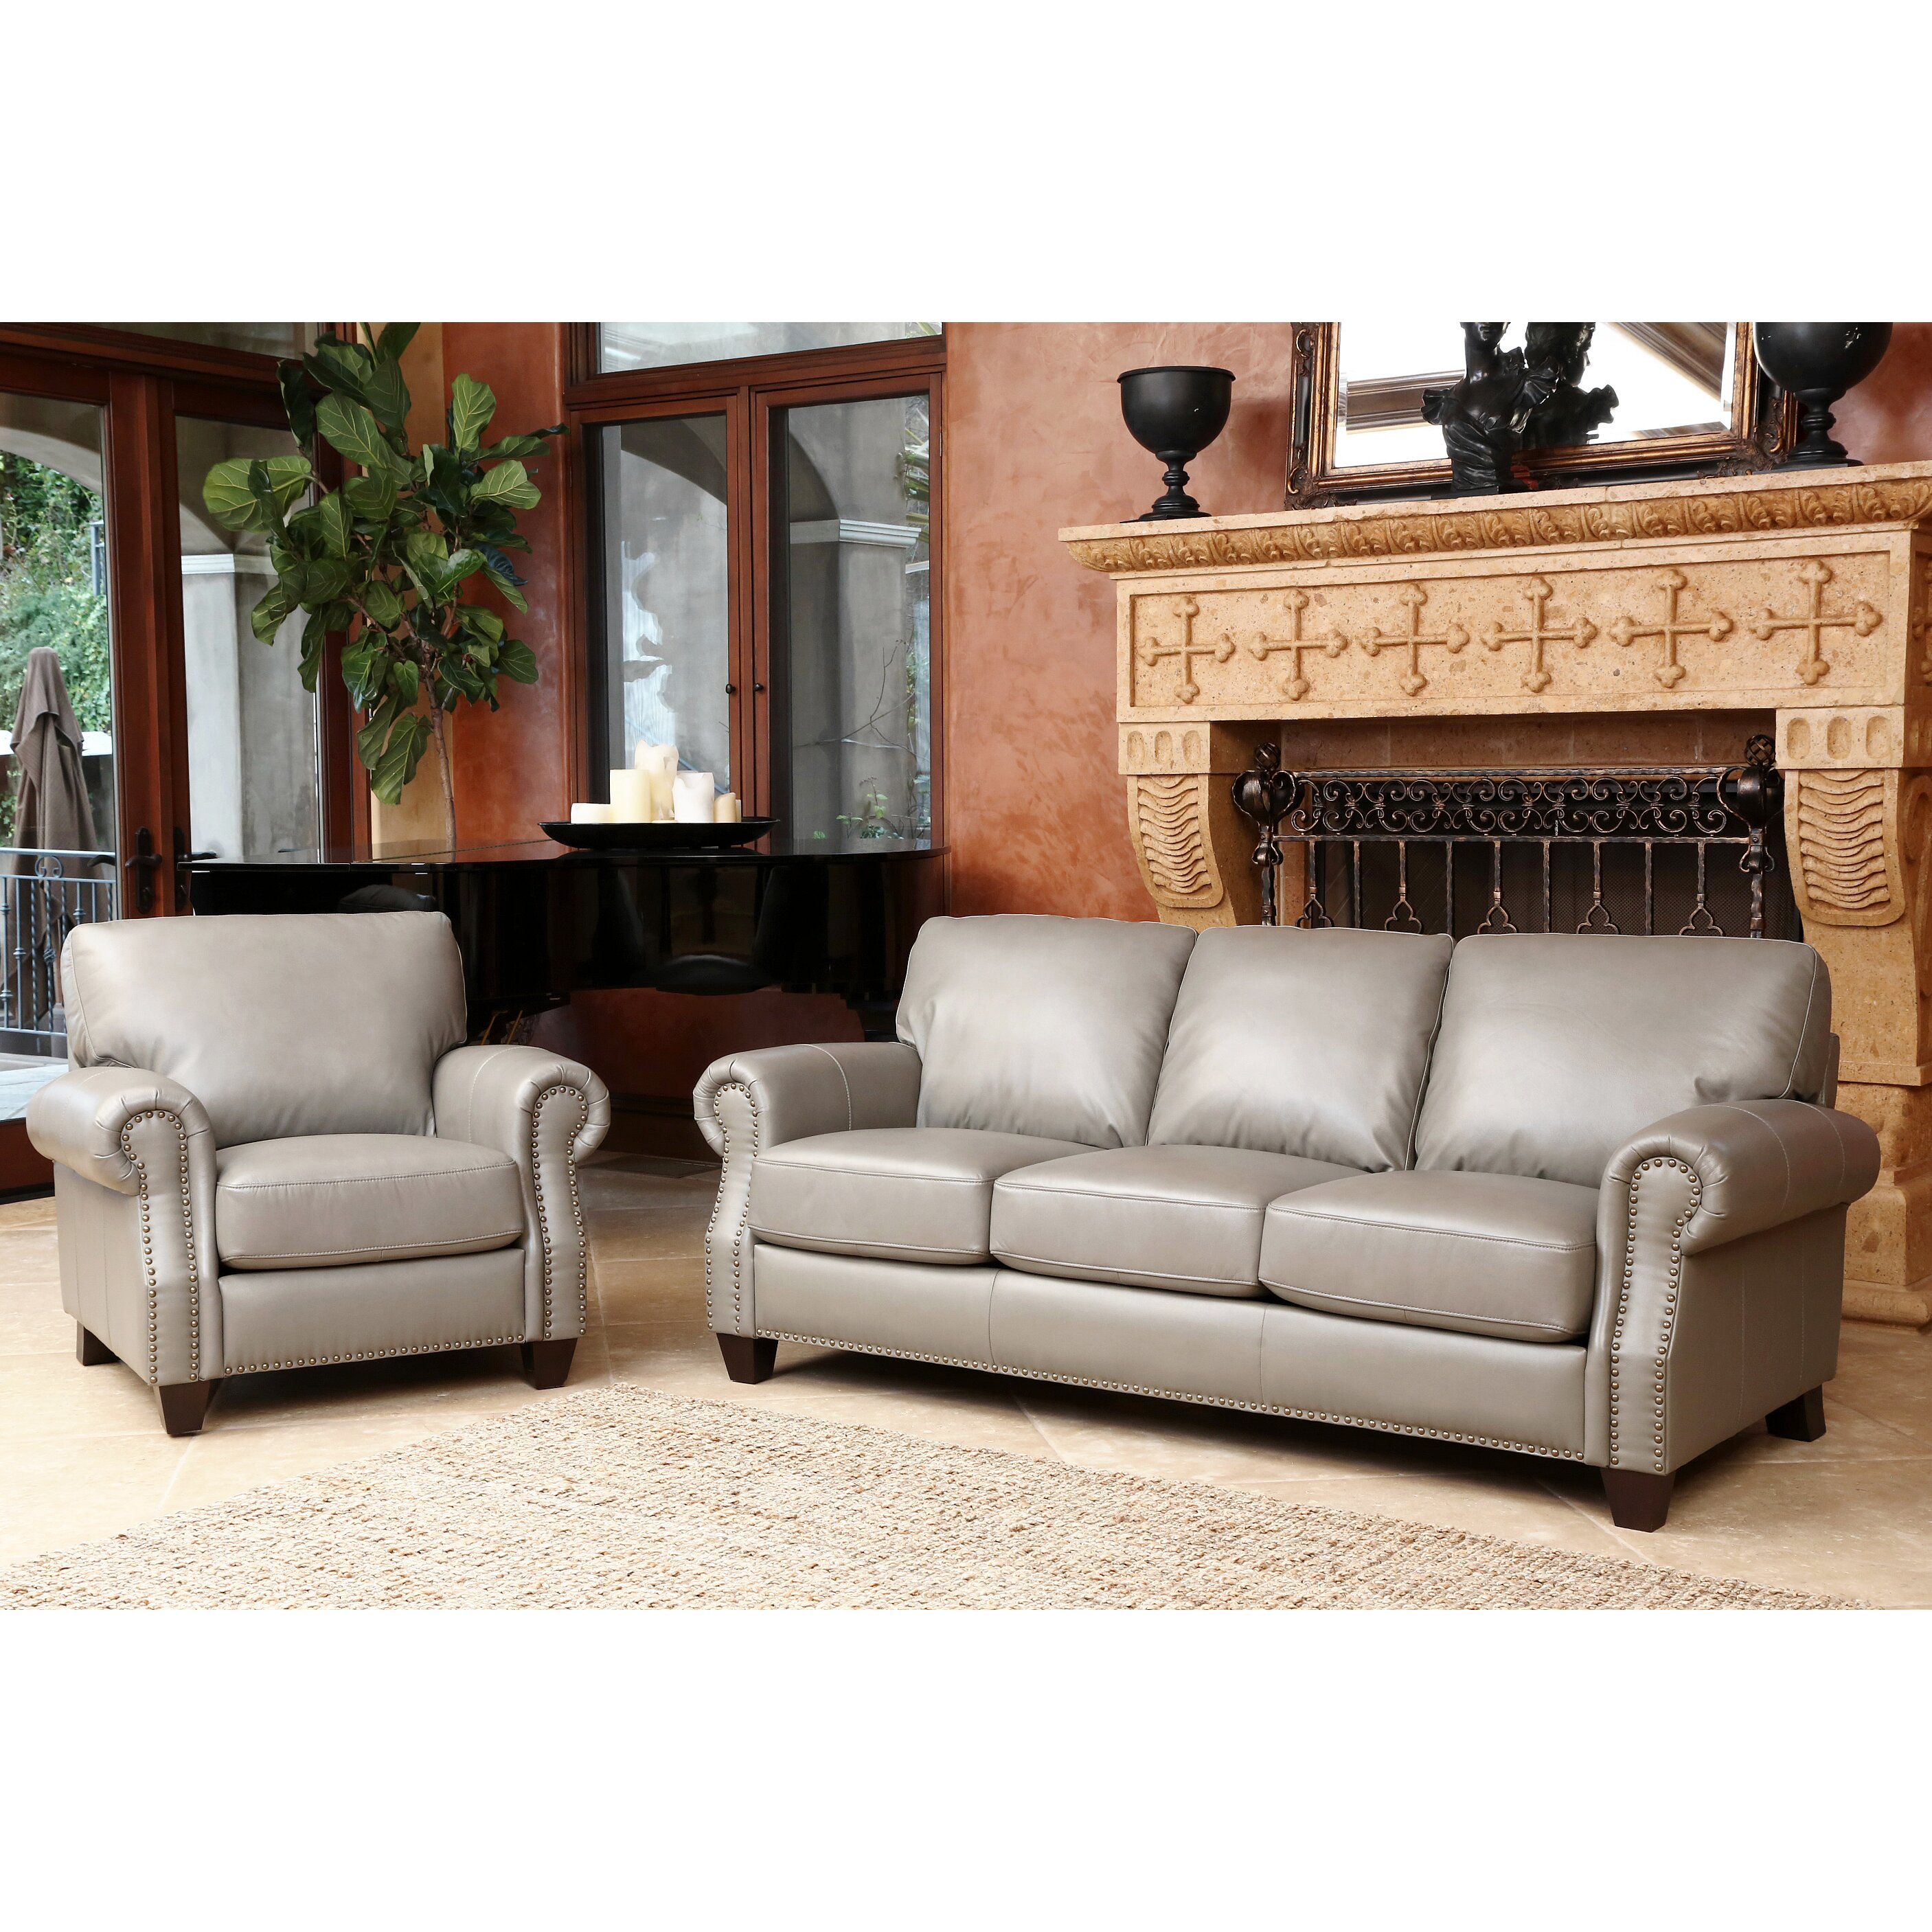 Darby Home Co Cairnbrook 3 Piece Leather Living Room Set